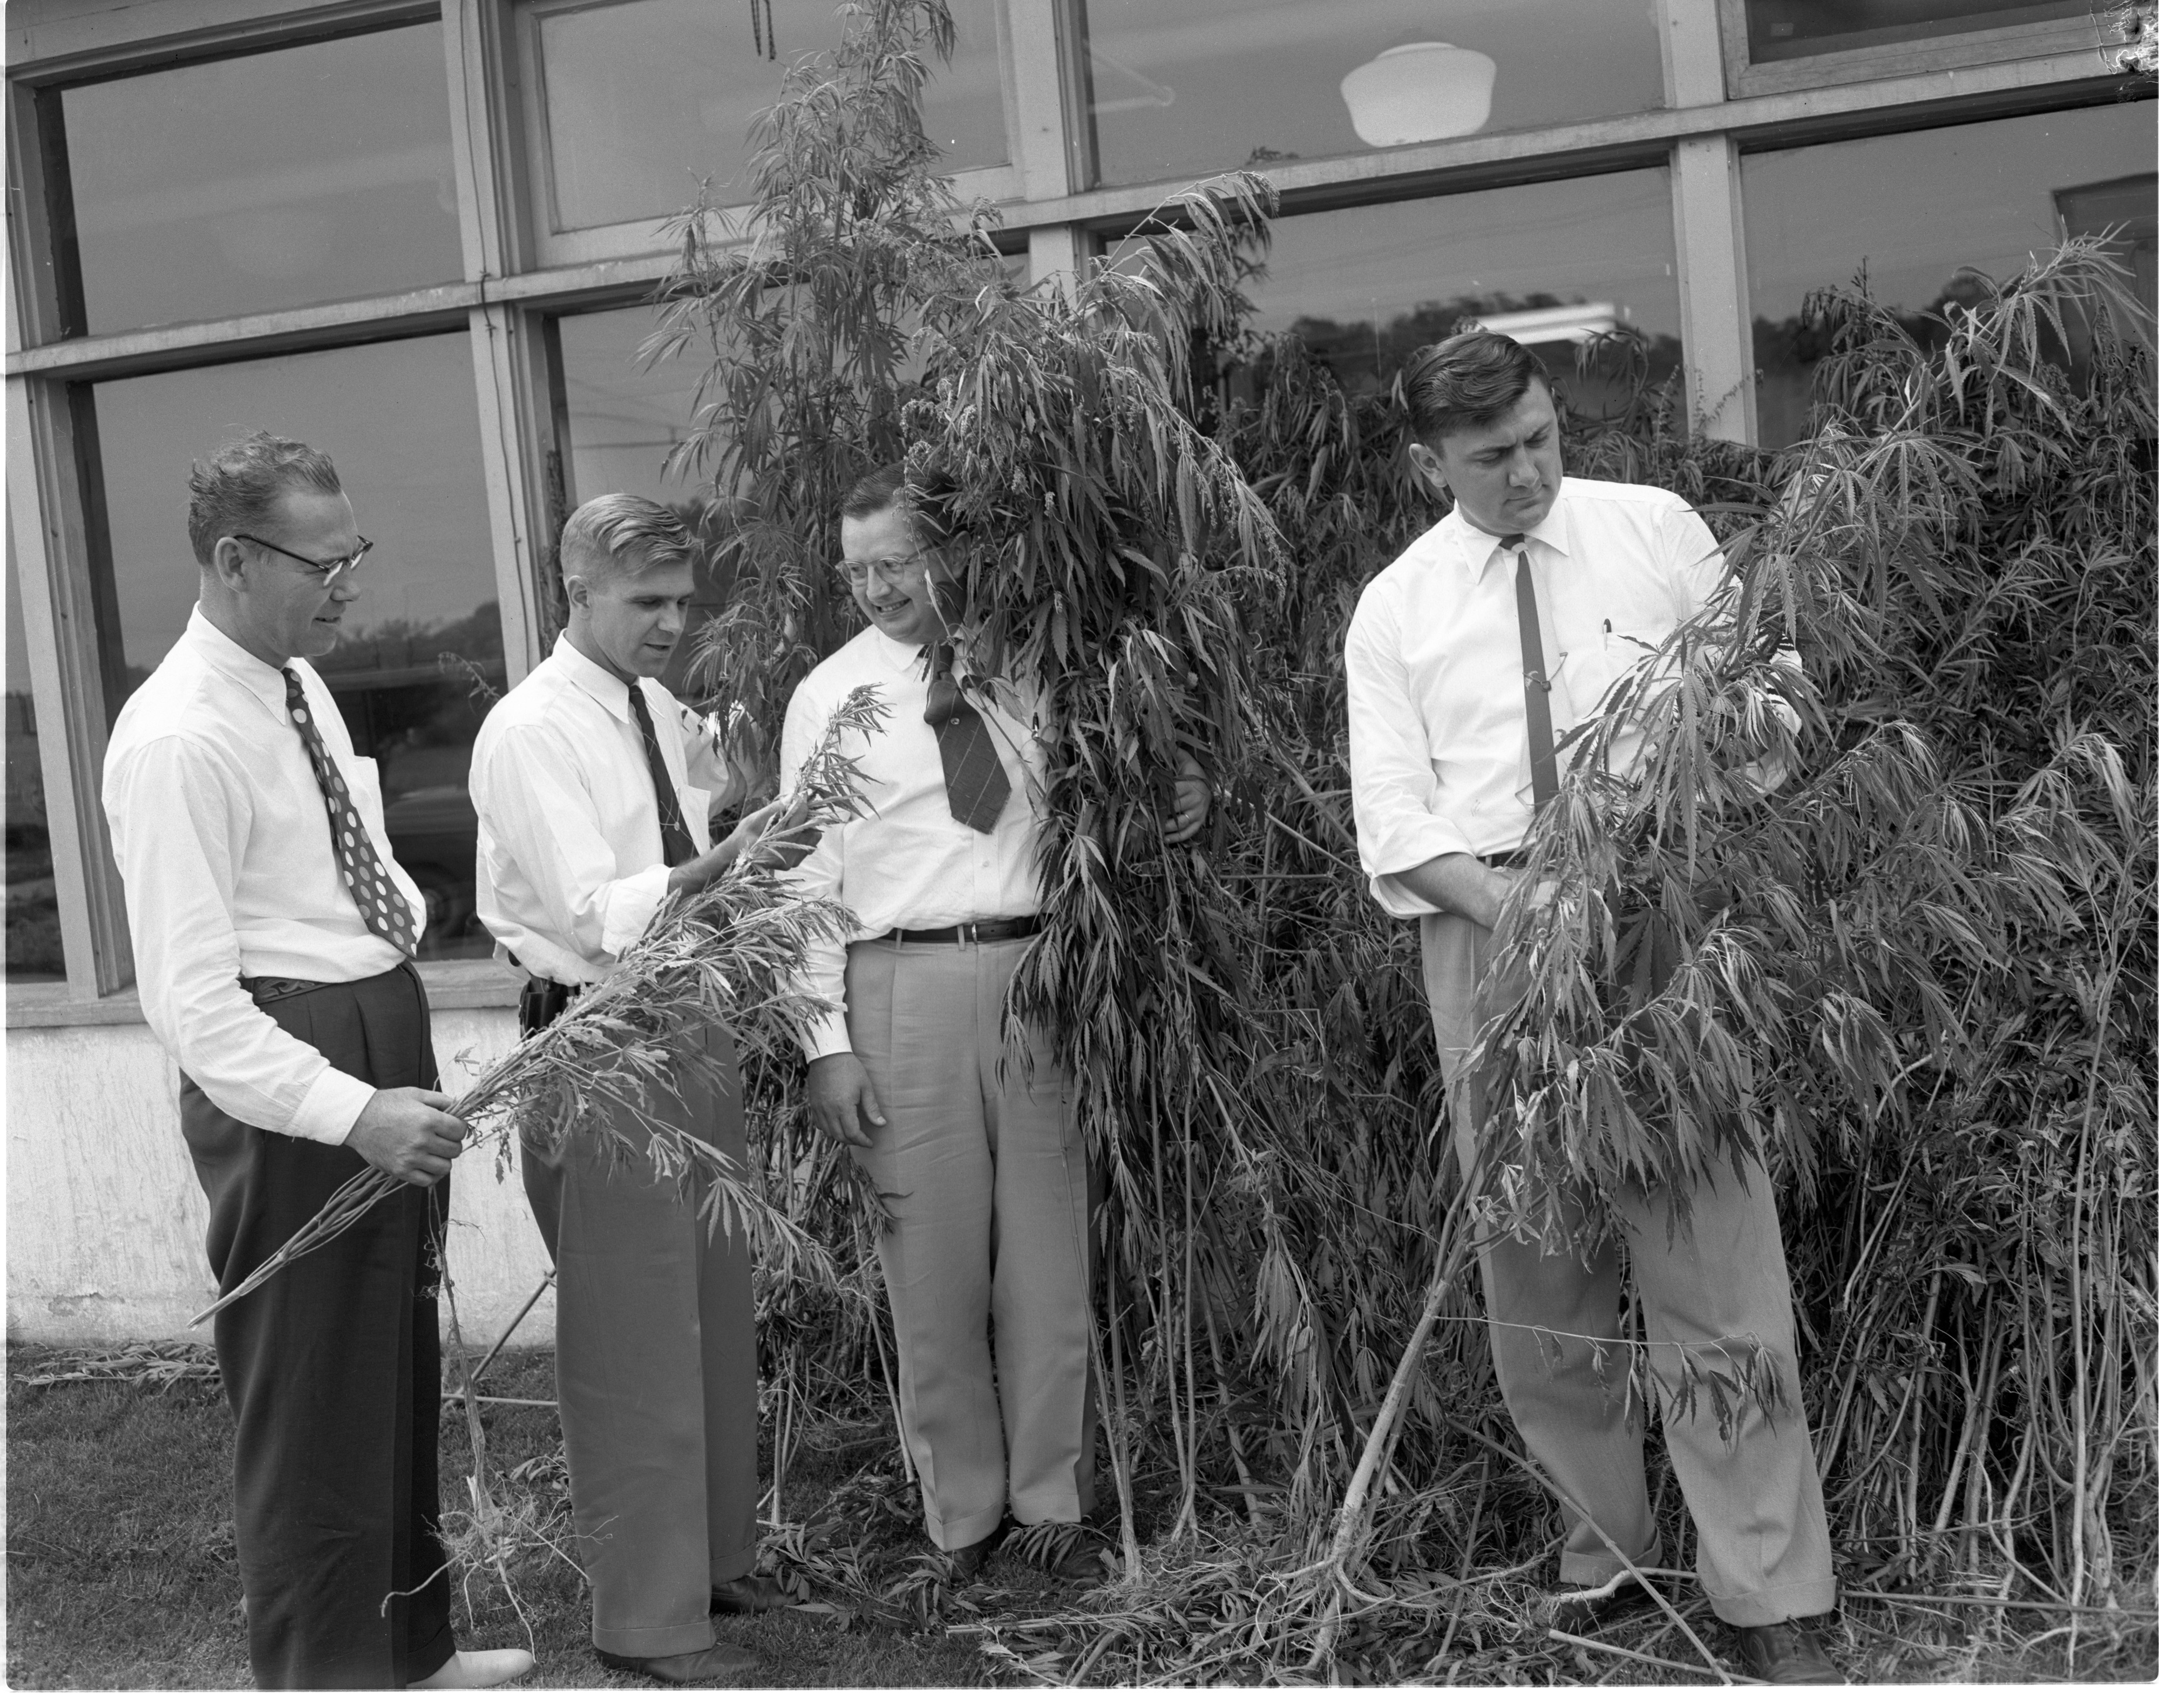 Washtenaw County Vice Squad Officers With Confiscated Marijuana Plants, July 1954 image